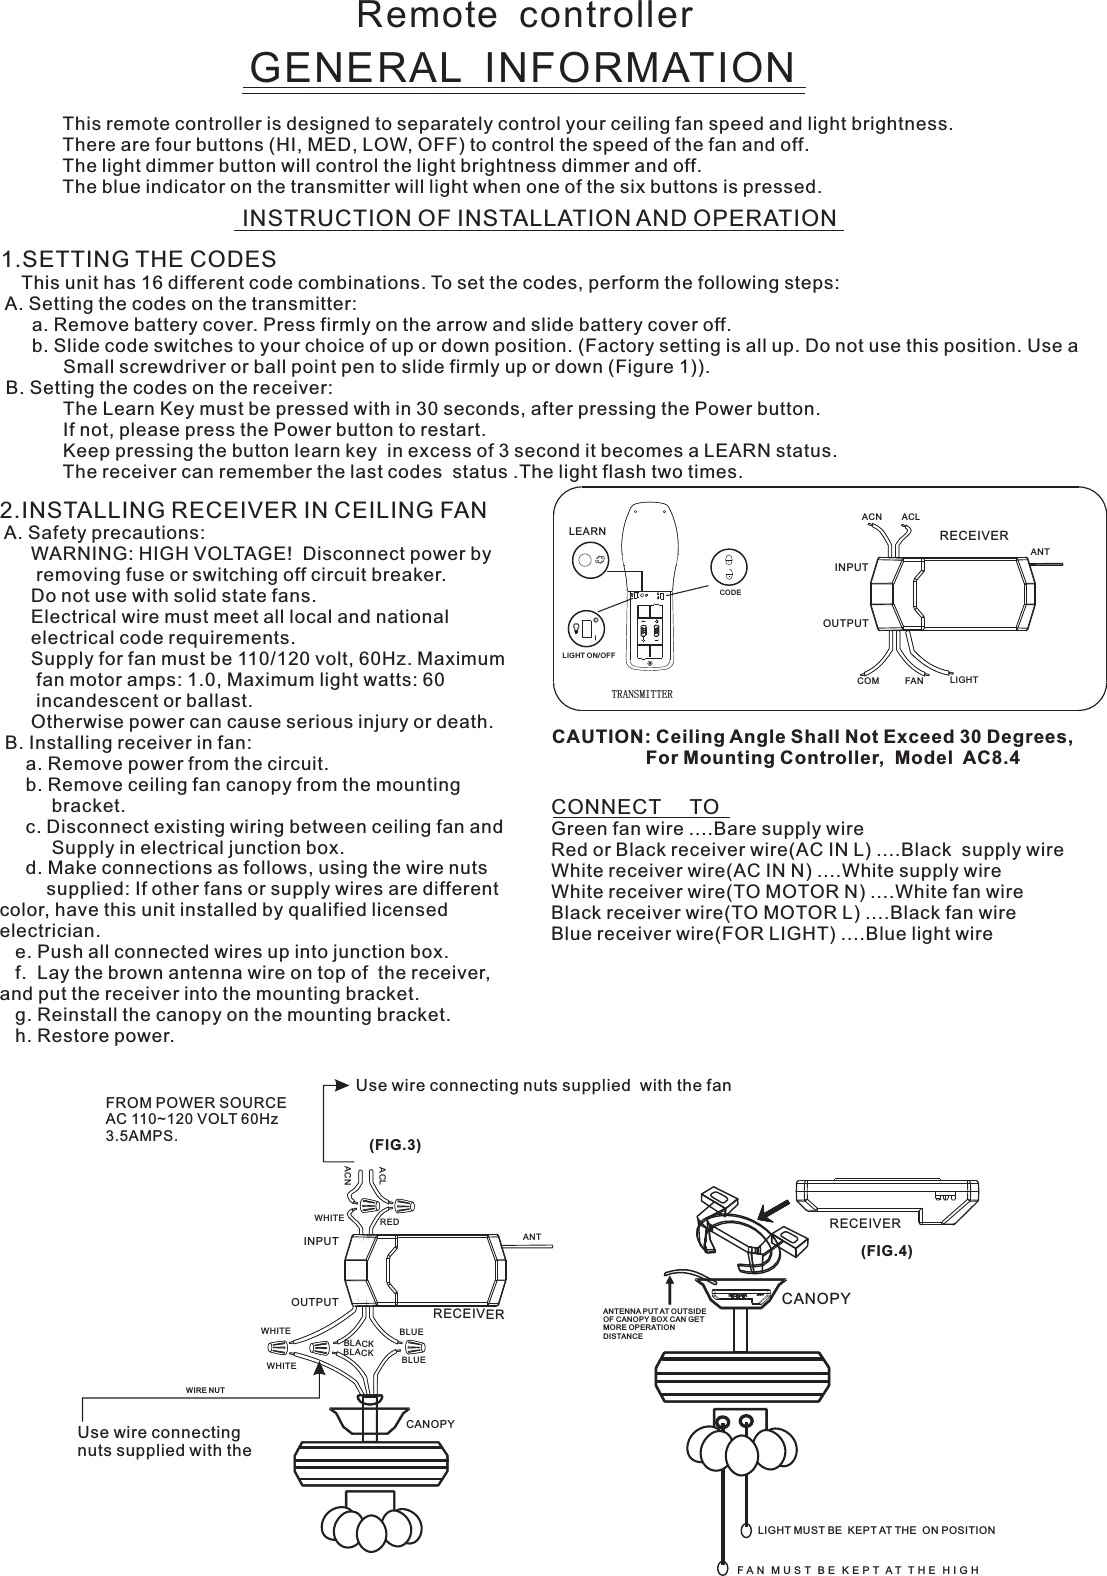 Carewell Electric Technology Fan61t4sp1 Remote Control User Manual Ac8 61t 4sp1